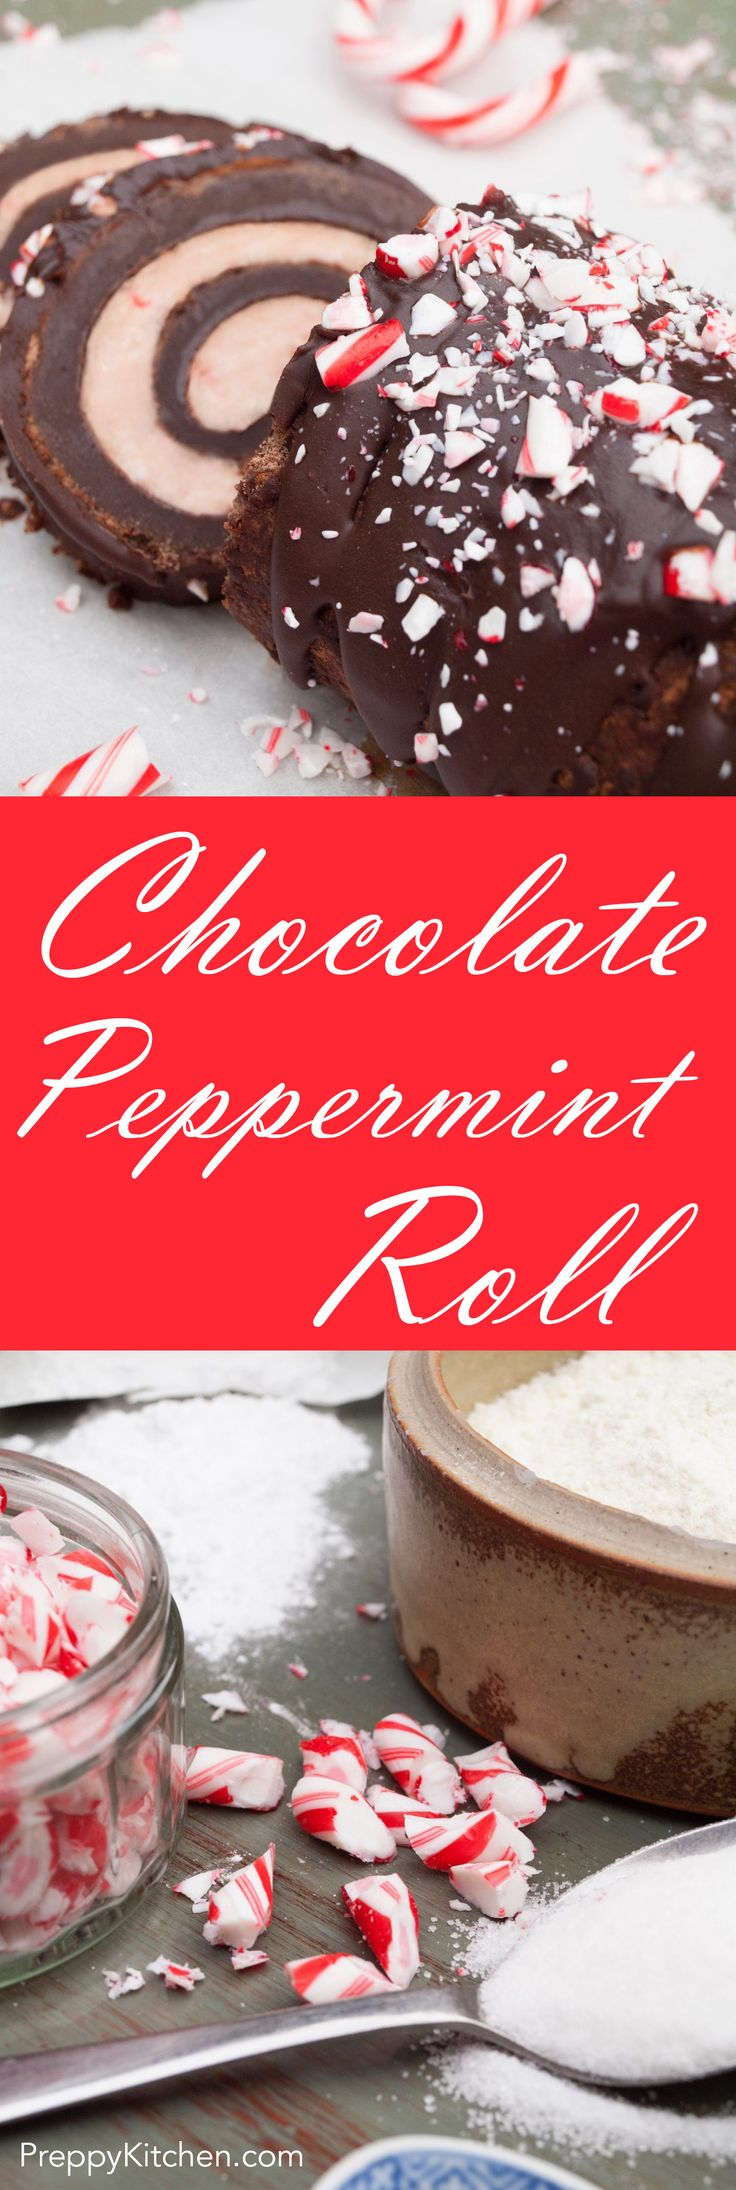 This decadent chocolate roll is surprisingly forgiving to assemble and it looks and tastes fantastic. via @preppykitchen